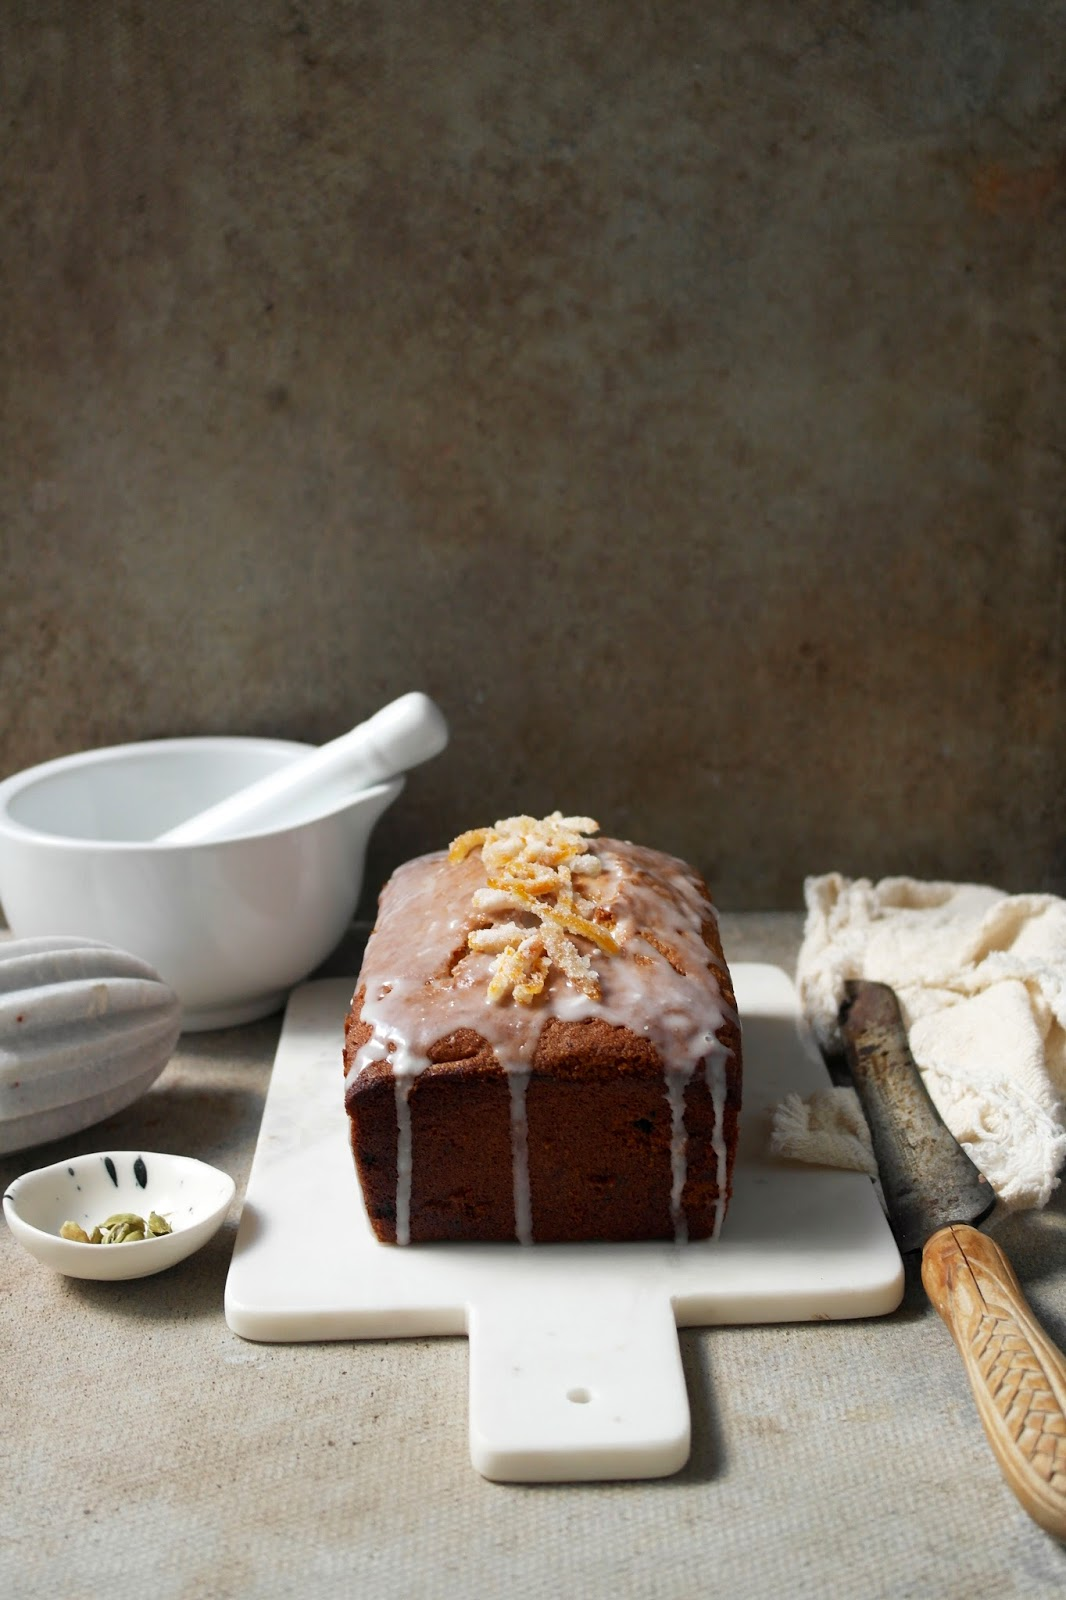 Twigg studios: earl grey cardamom and orange loaf